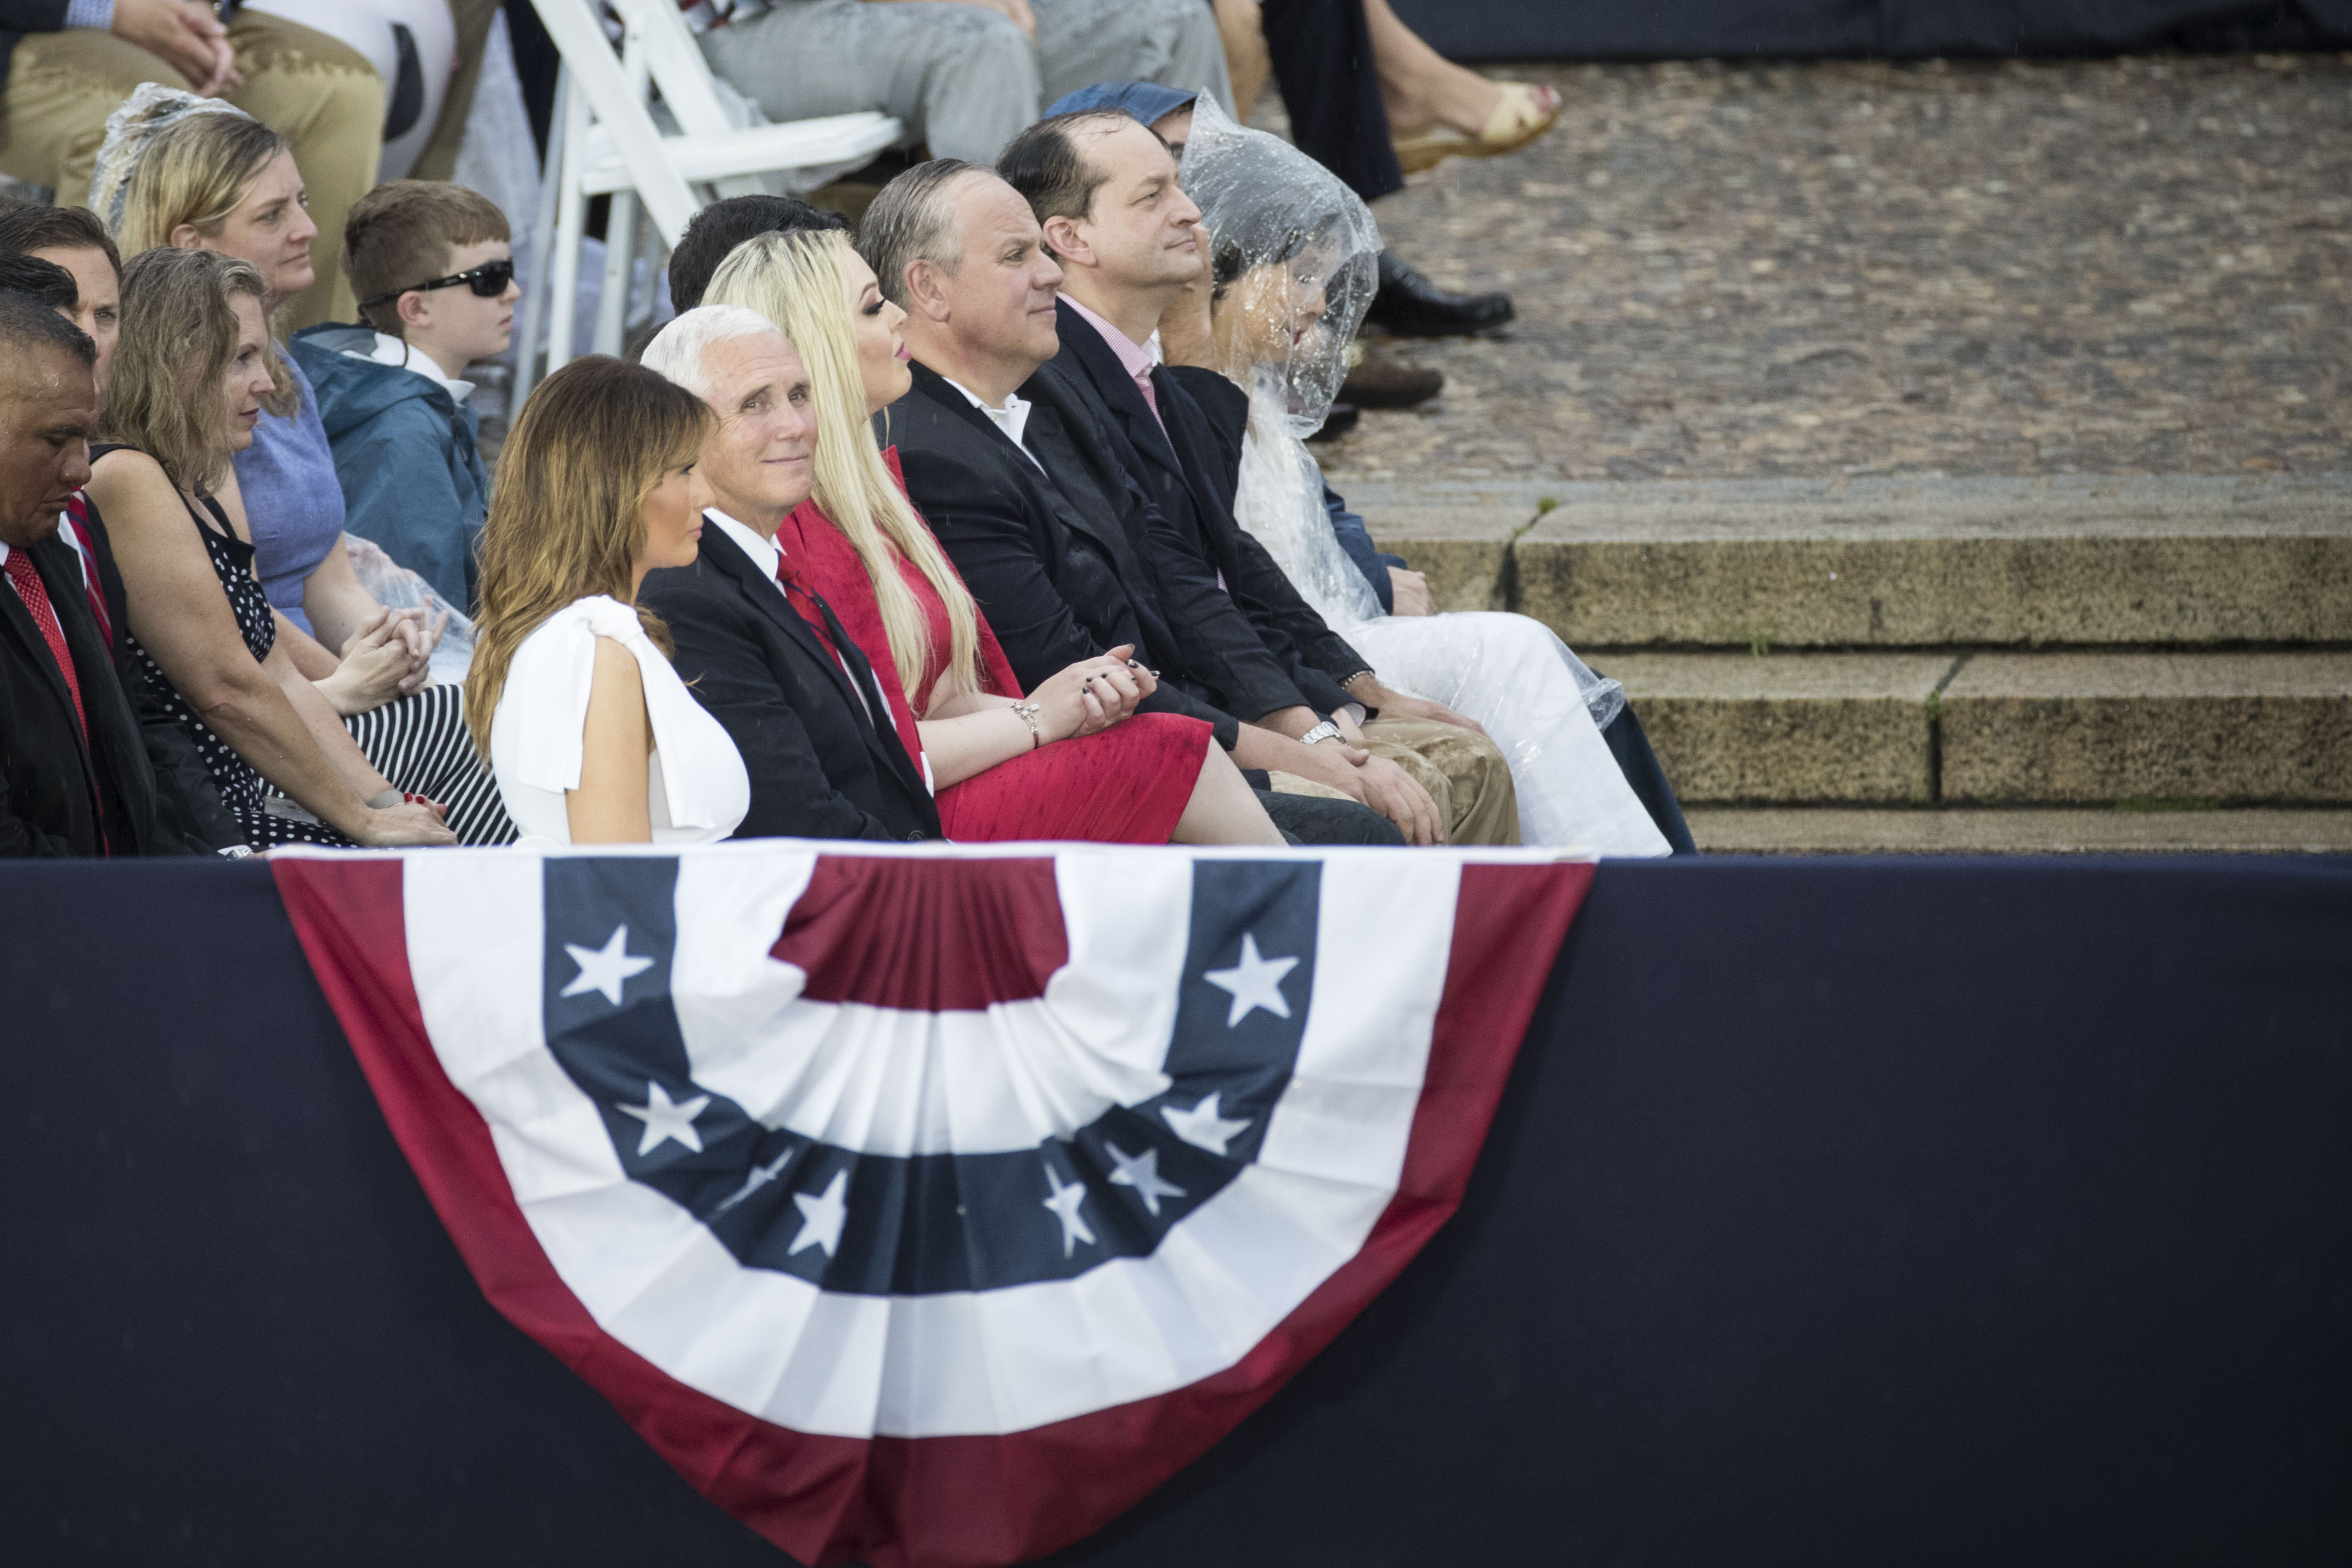 """WASHINGTON, DC - JULY 04: First Lady Melania Trump, Vice President Mike Pence, Second Lady Karen Pence and Tiffany Trump listen as President Donald Trump delivers remarks at the """"Salute to America"""" ceremony in front of the Lincoln Memorial, on July 4, 2019 in Washington, DC. The presentation featured armored vehicles on display, a flyover by Air Force One, and several flyovers by other military aircraft. (Photo by Sarah Silbiger/Getty Images)"""